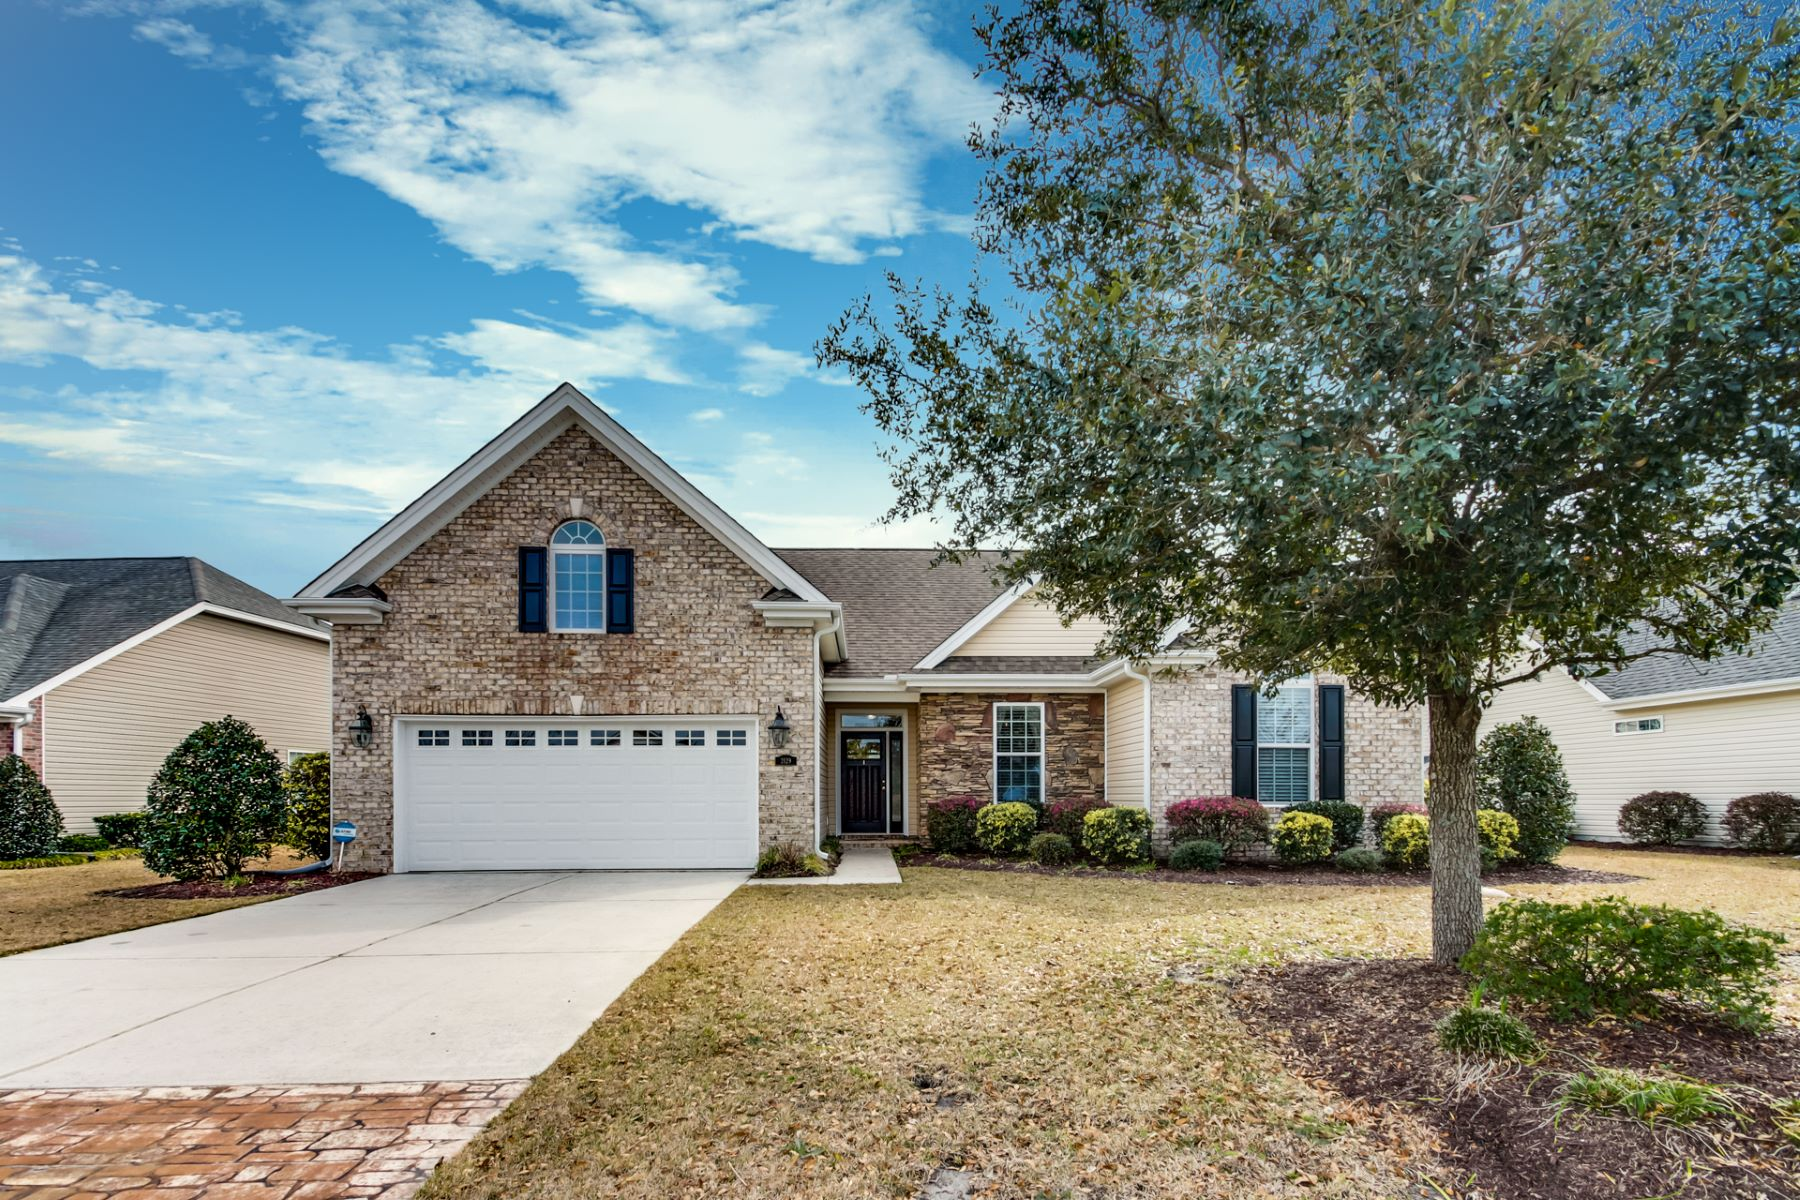 Single Family Homes for Sale at Timeless Style in Calabash 2129 Lindrick Ct SW Calabash, North Carolina 28467 United States